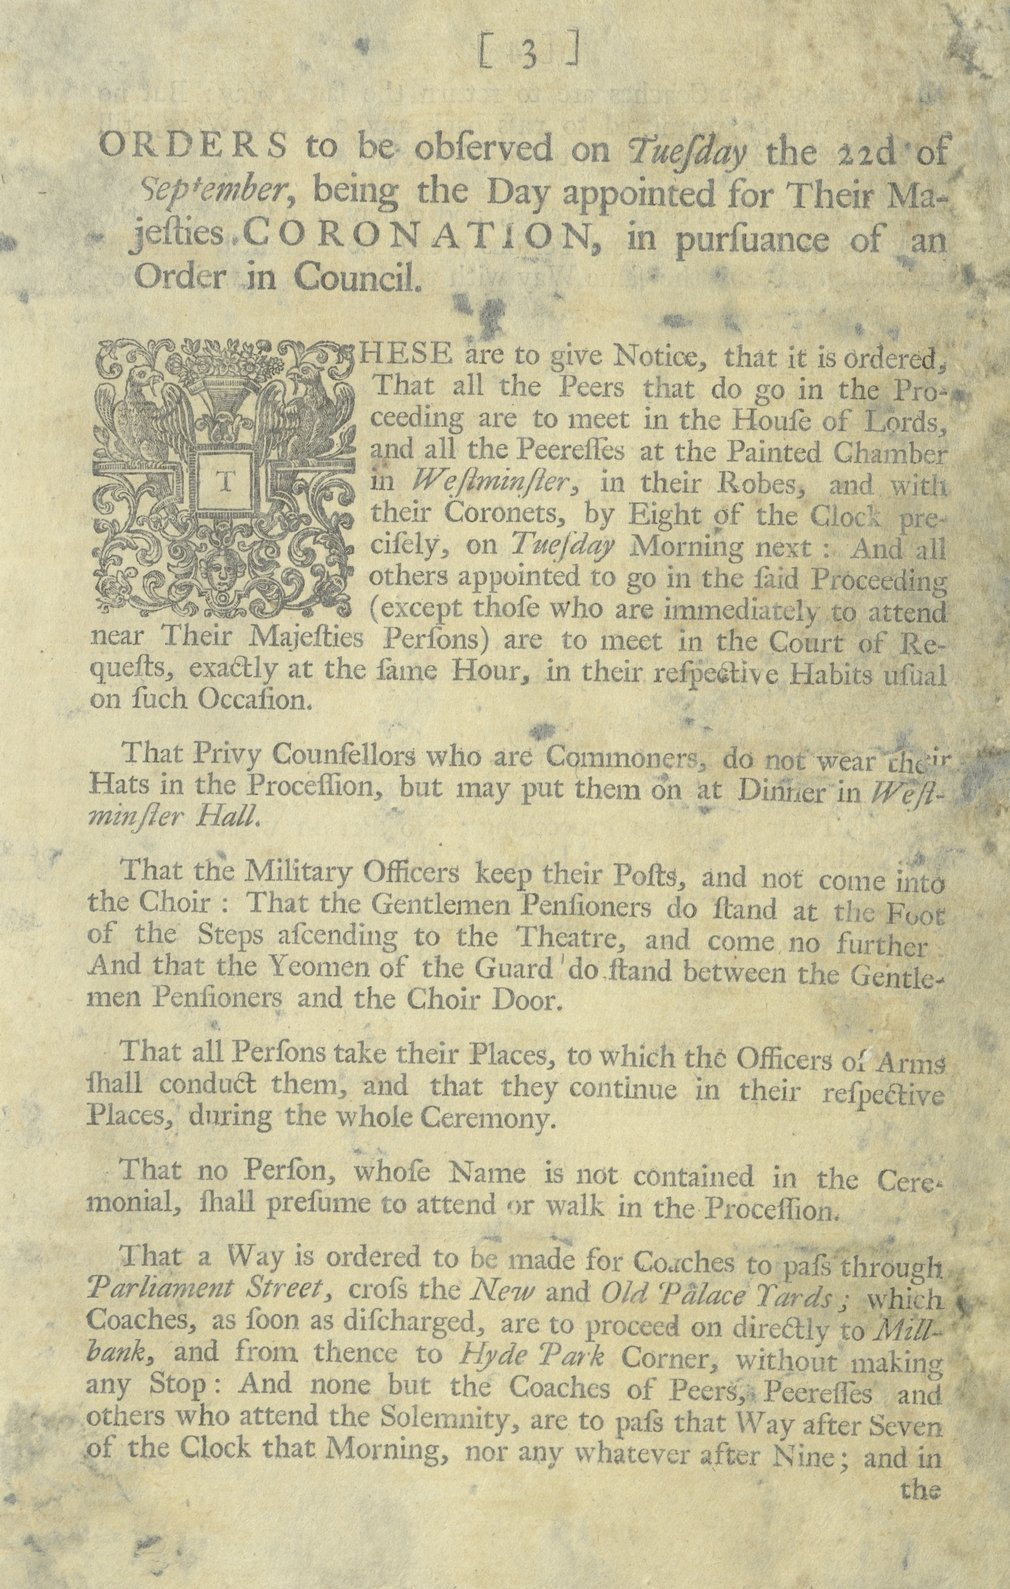 Orders to be observed at the coronation of George III, 1761 GEO/MAIN/15765-66